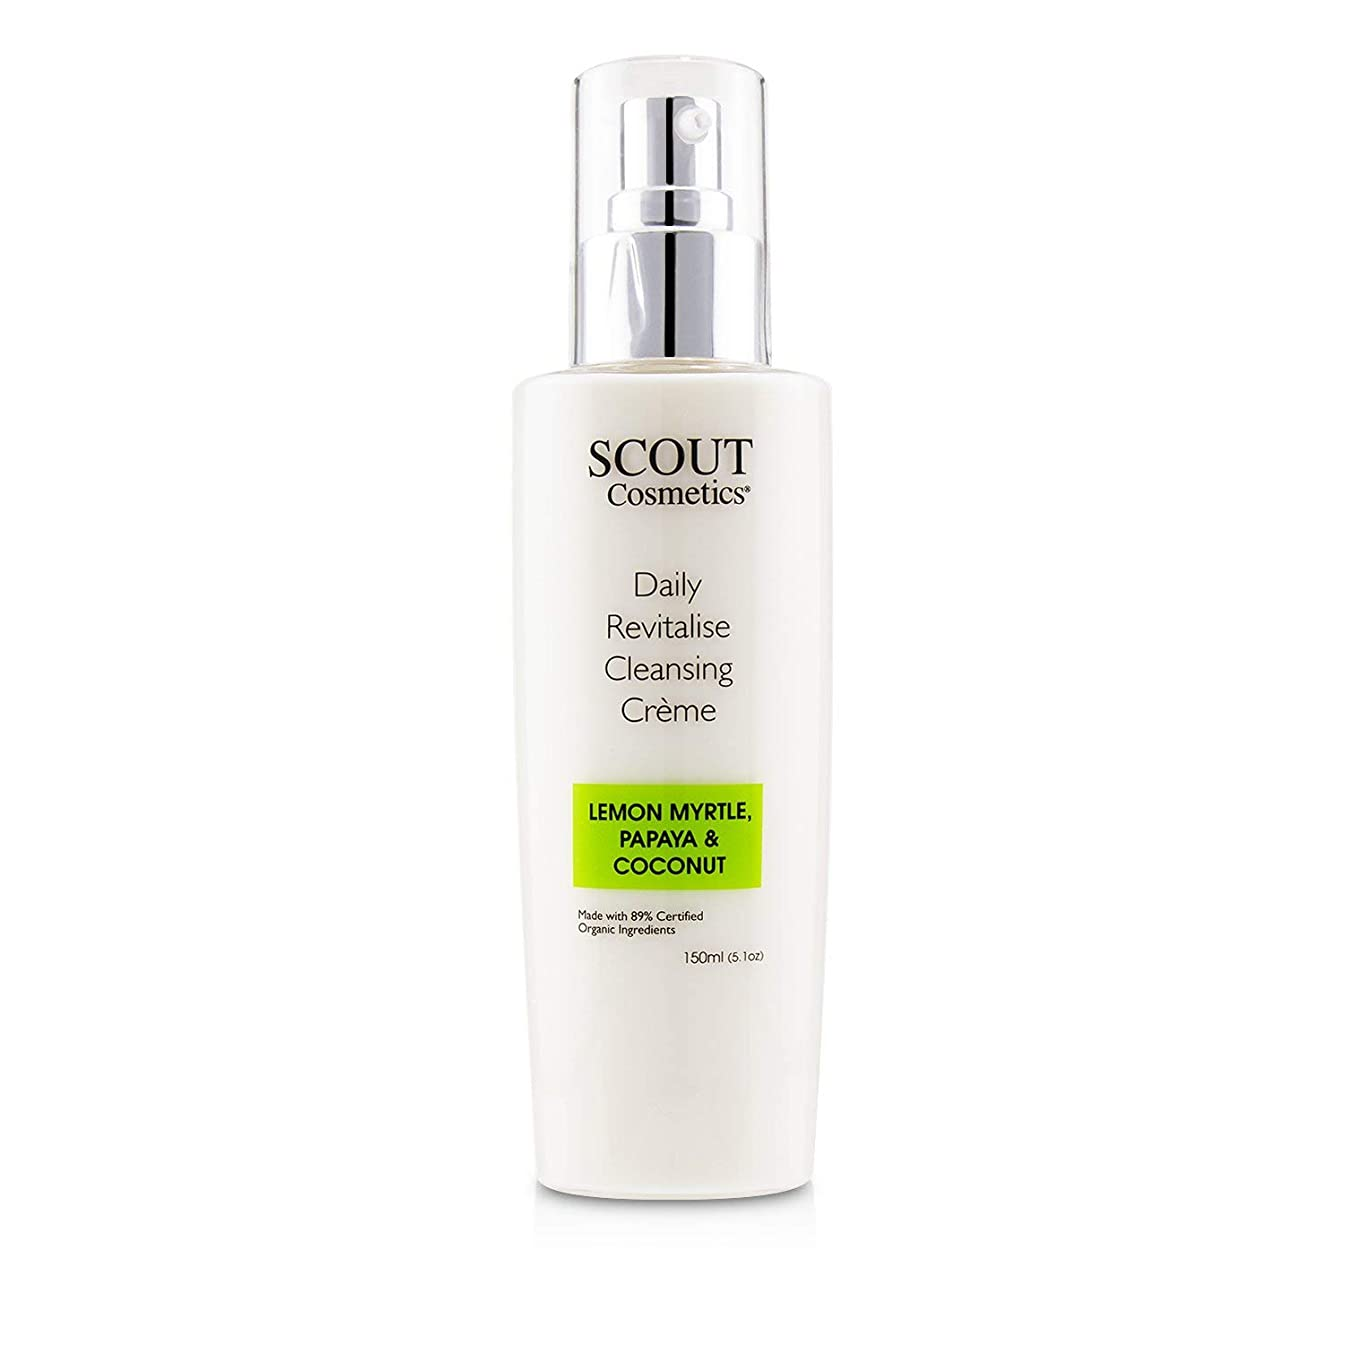 可能にするフォアマン肯定的SCOUT Cosmetics Daily Revitalise Cleansing Creme with Lemon Myrtle, Papaya & Coconut 150ml/5.1oz並行輸入品